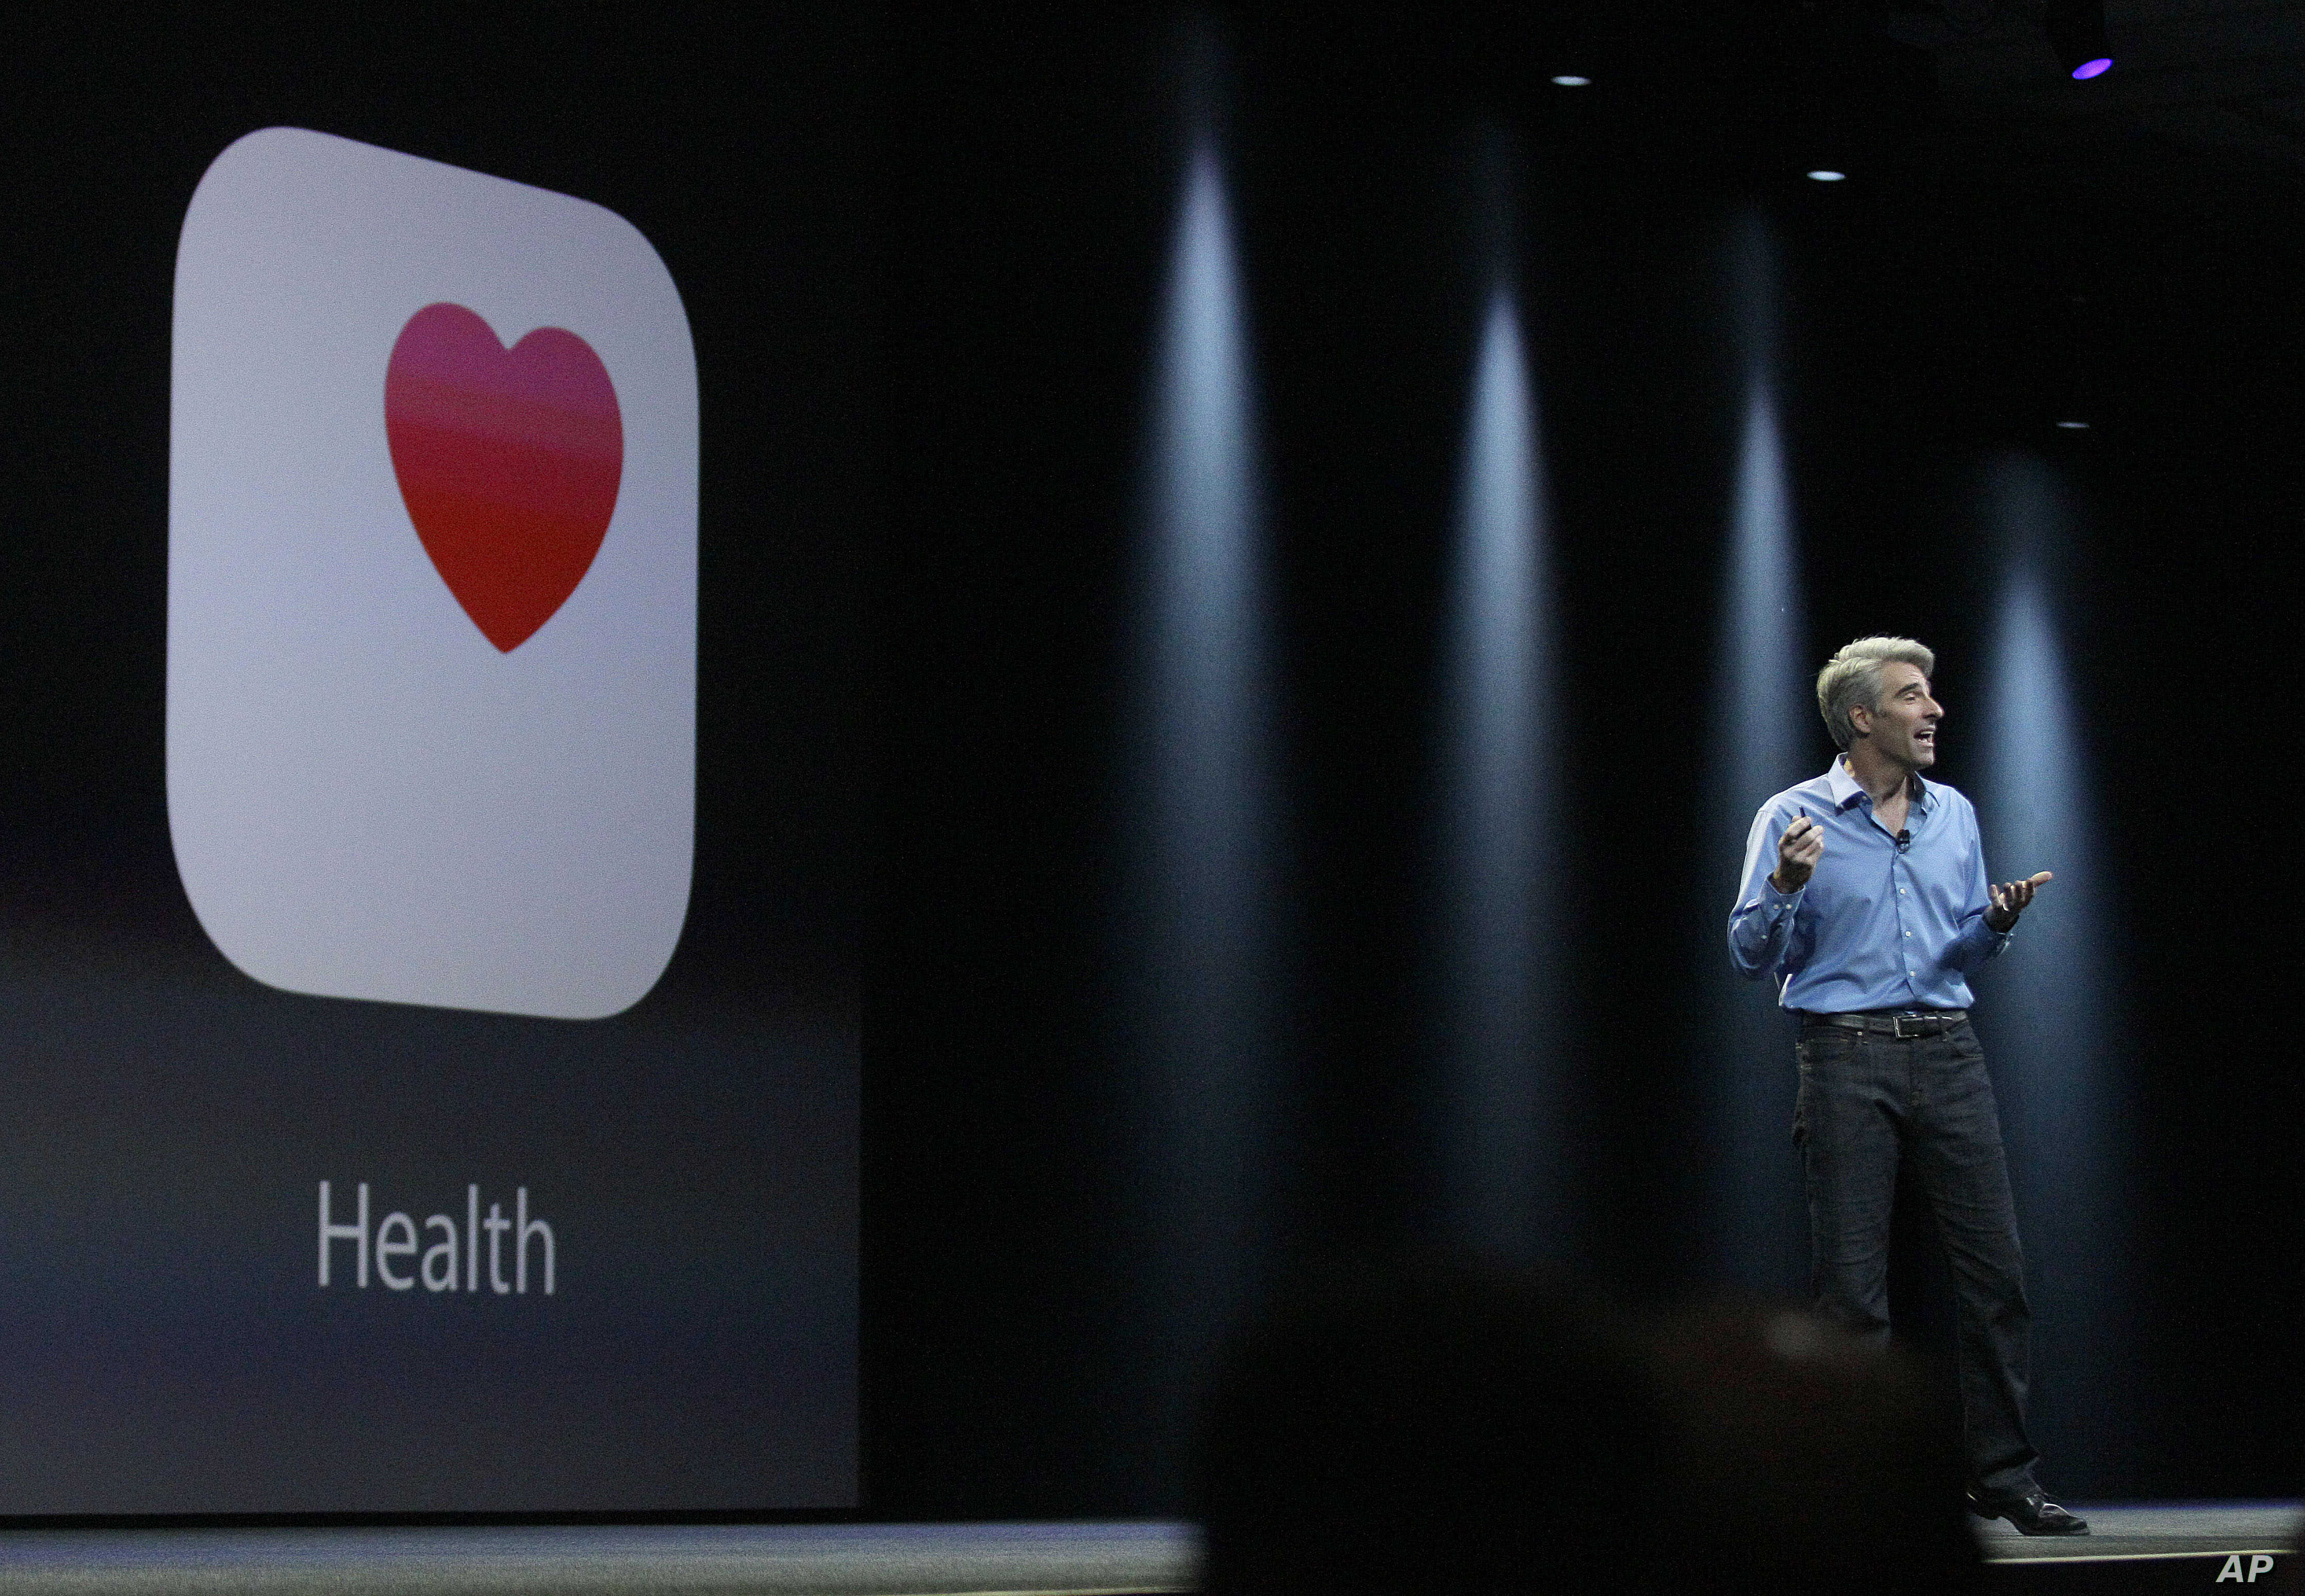 FILE - Apple senior vice president of Software Engineering Craig Federighi speaks about the Apple HealthKit app at the Apple Worldwide Developers Conference in San Francisco.